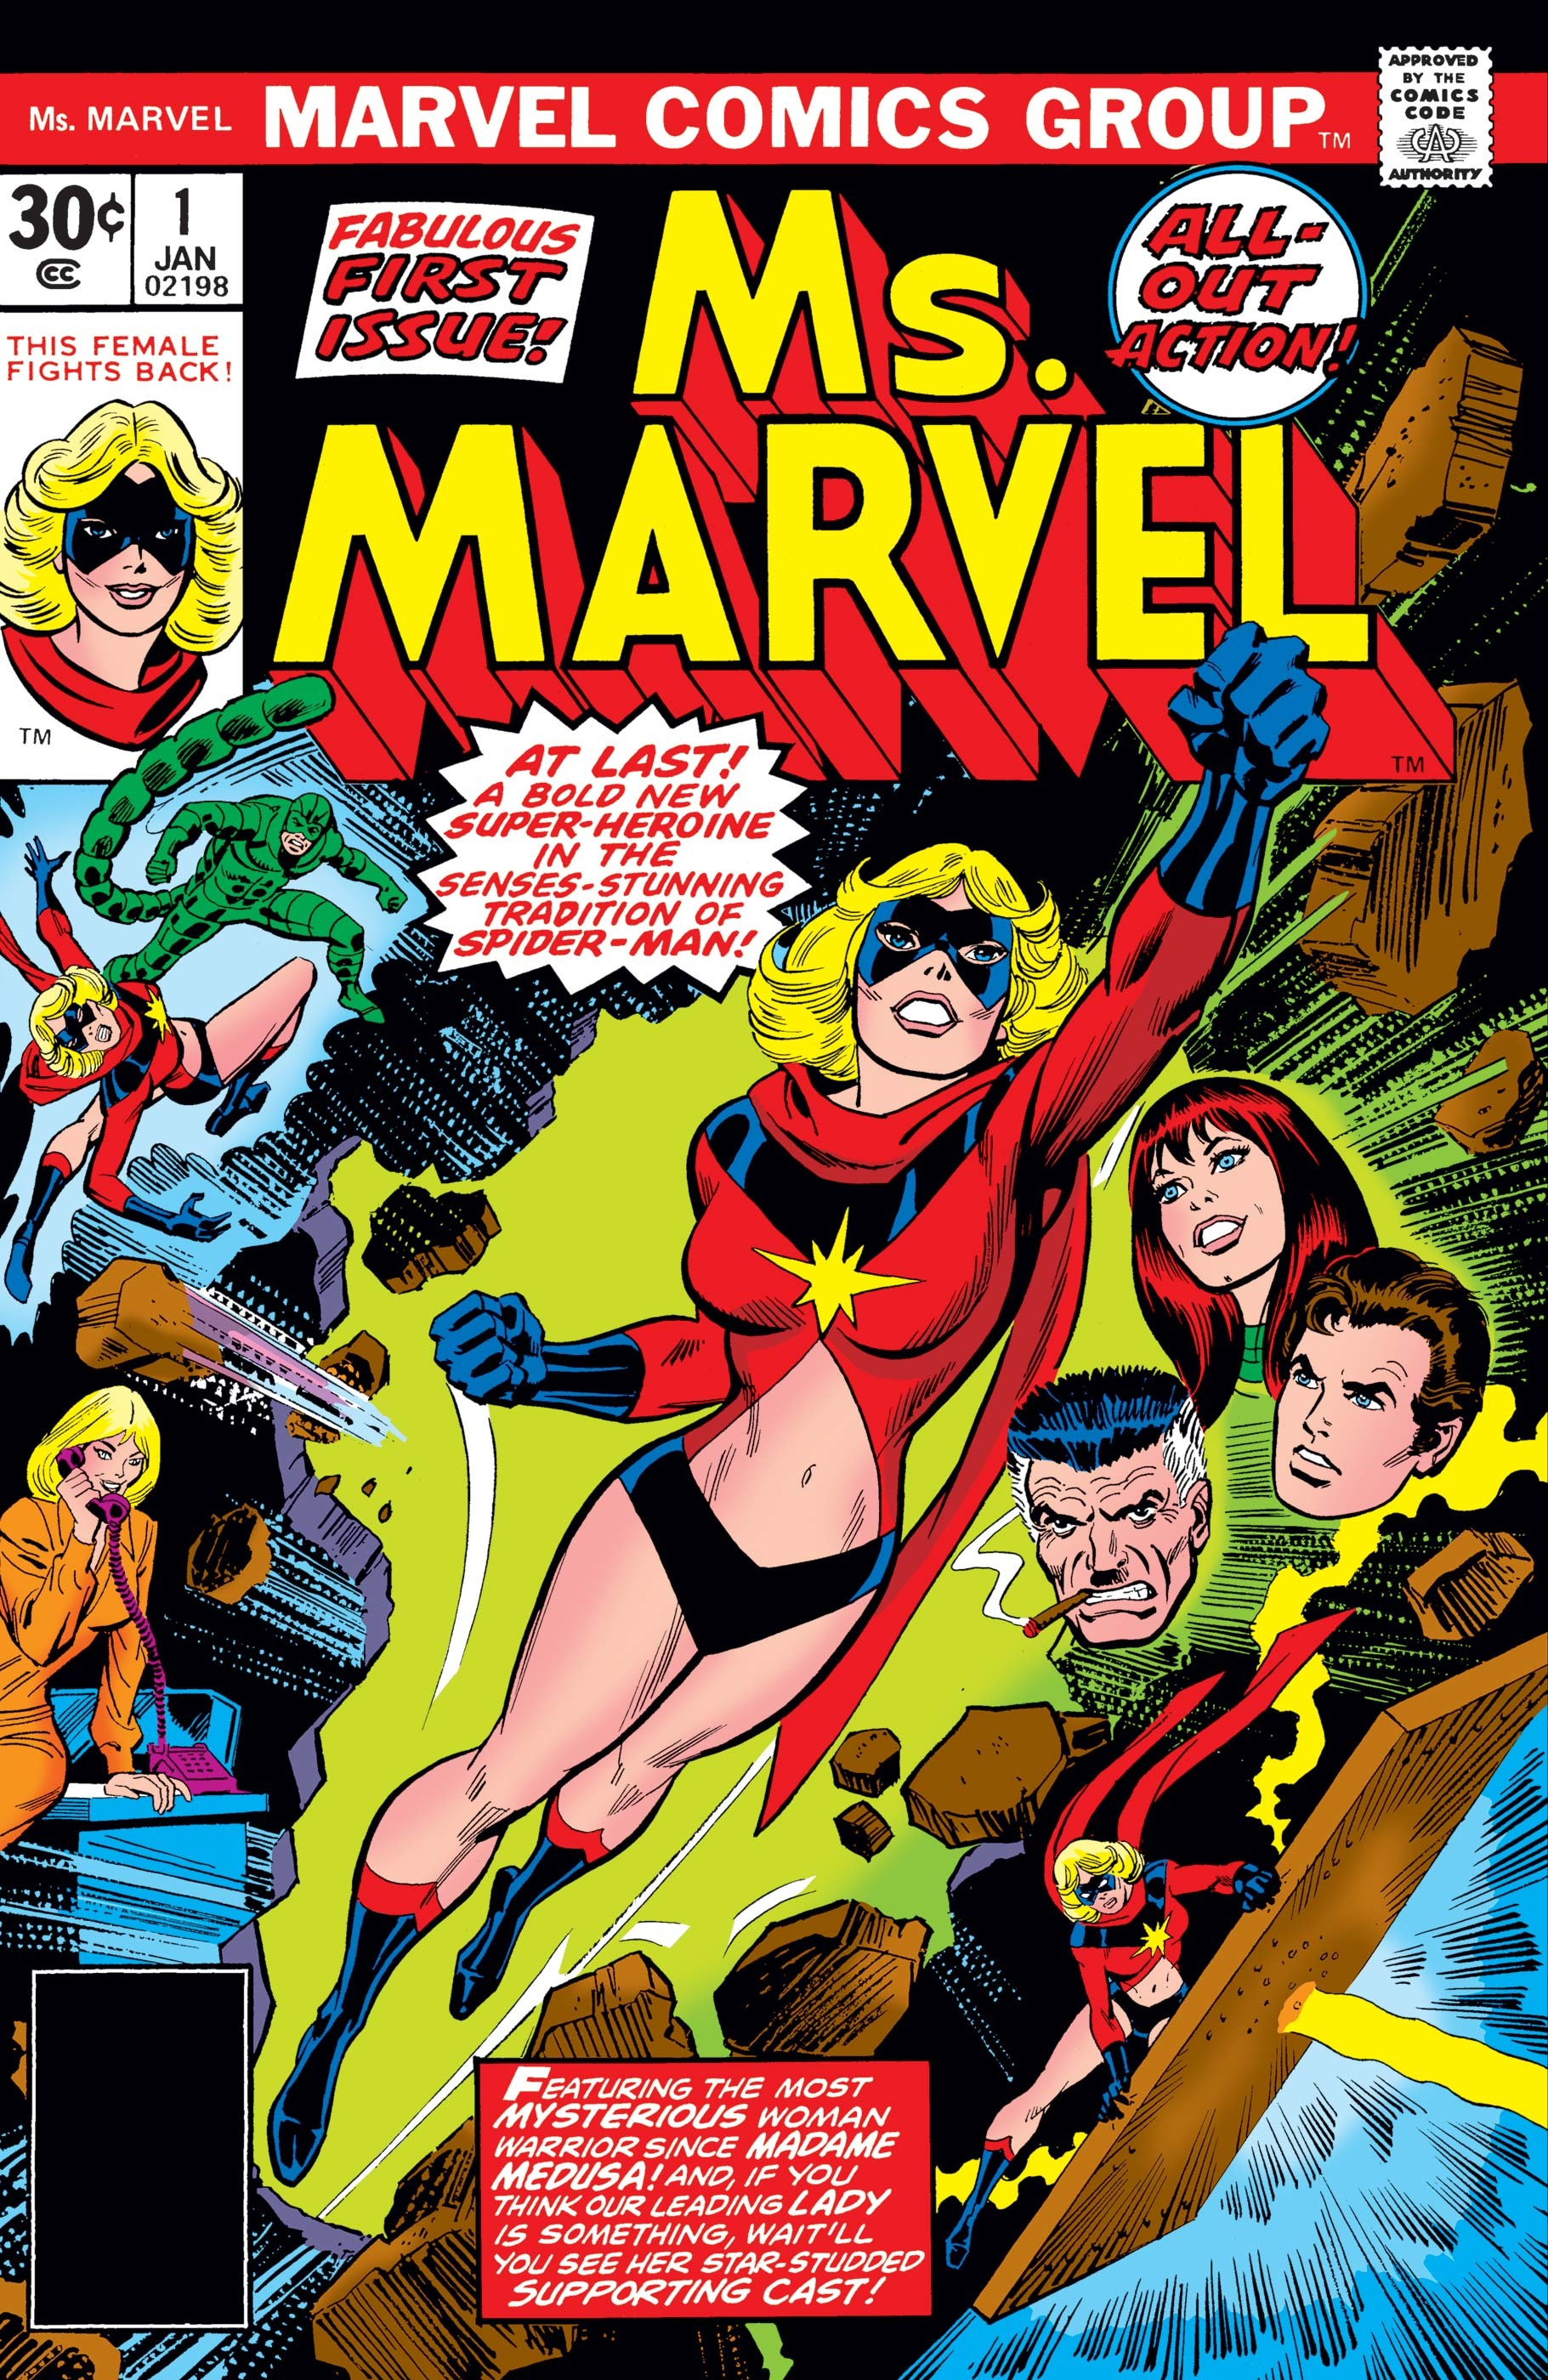 No fim dos anos 1970, Carol Danvers assume o papel de Ms. Marvel (Foto: John Romita/Marvel)